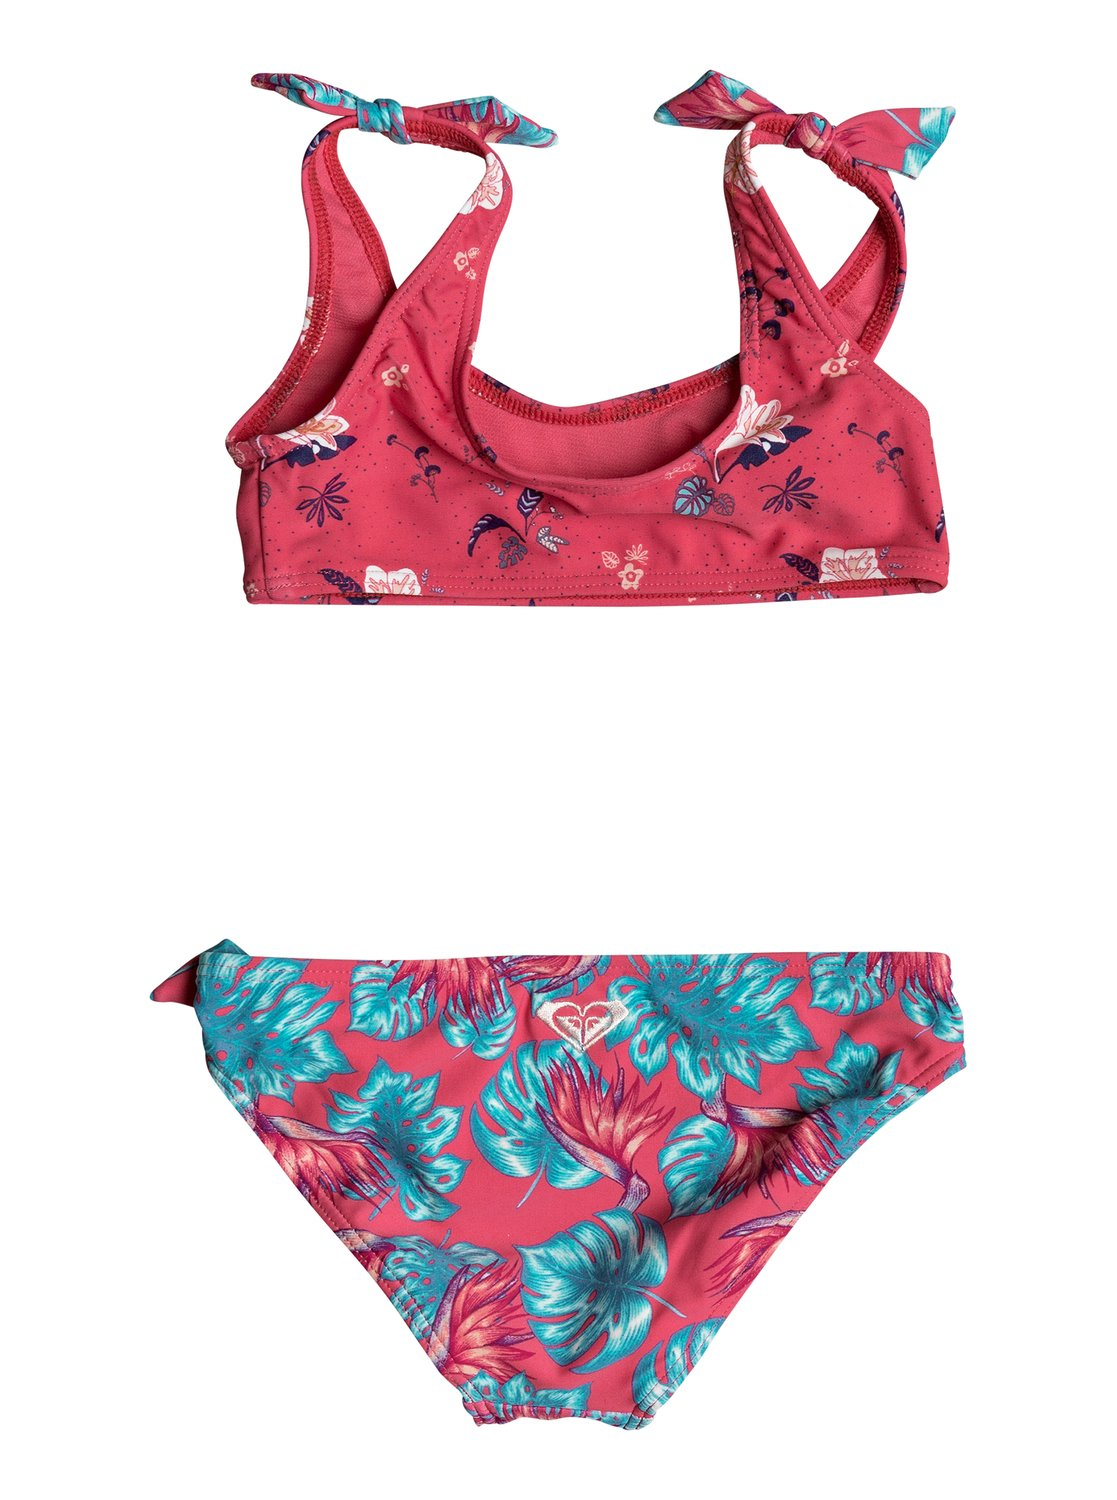 Roxy Girls Roxy Mermaid Athletic Bikini Set In Rouge Red Tropicool